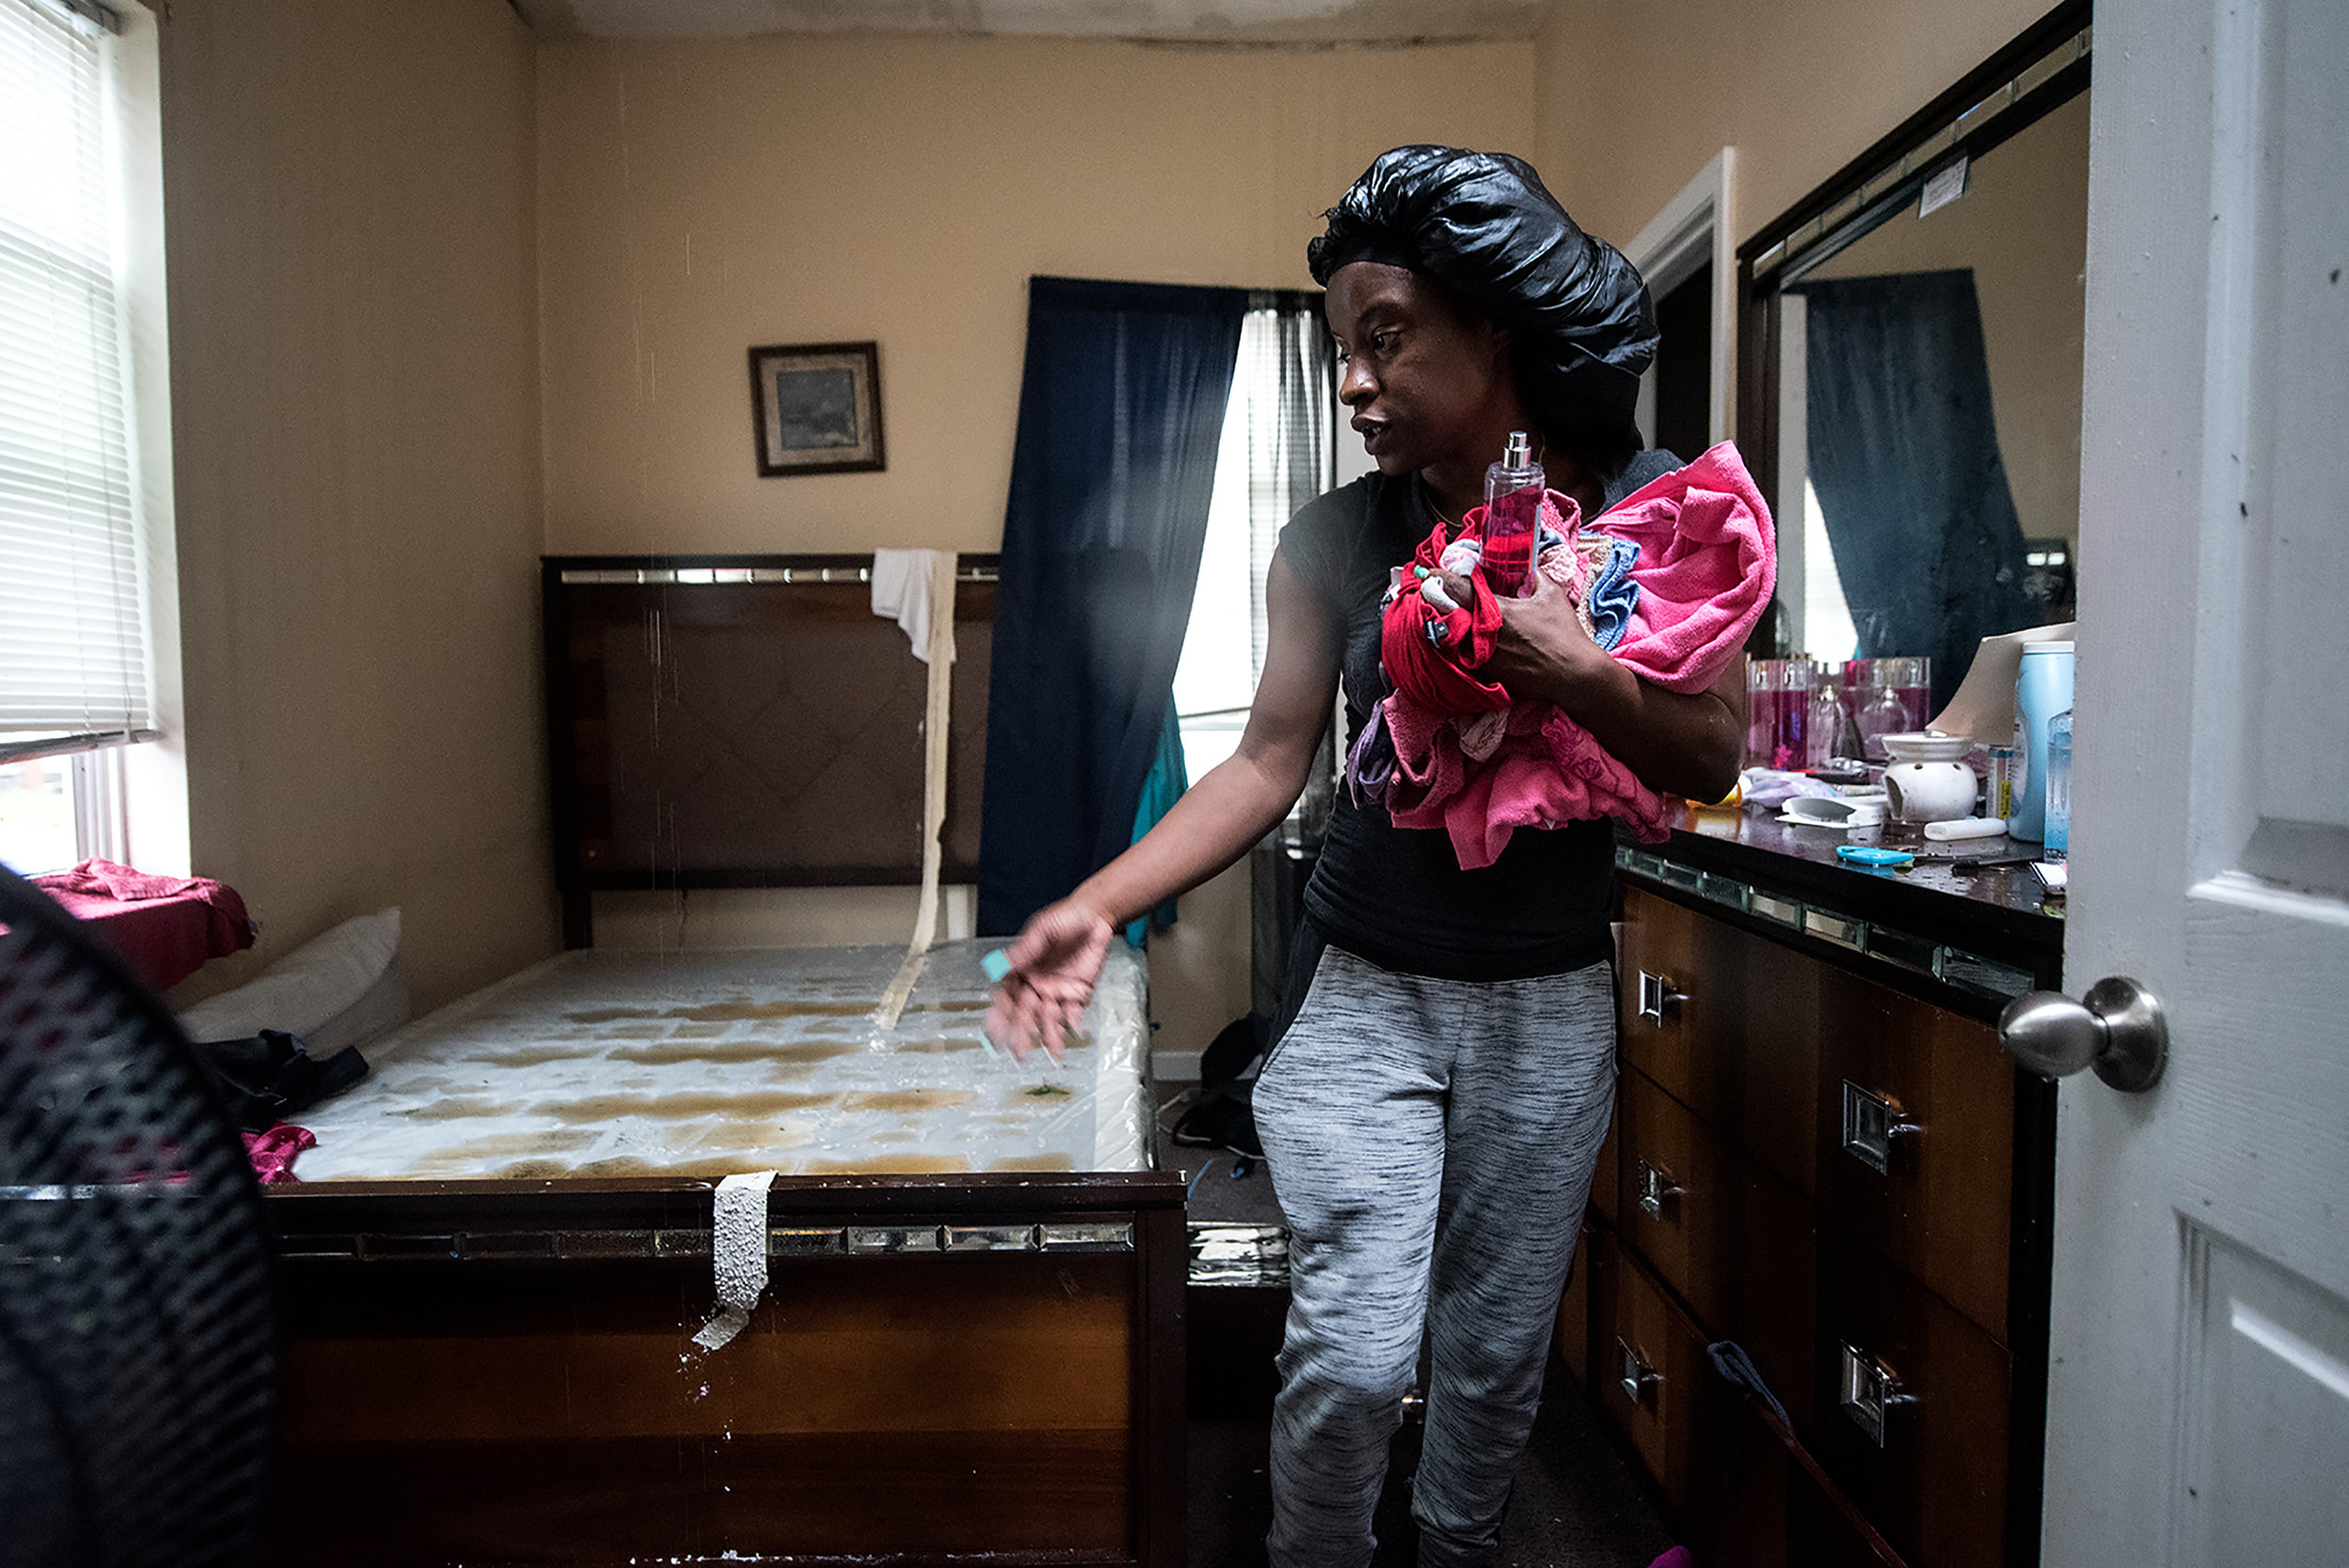 Rochel Williams returns to her home to gather belongings on Friday after the family's front porch collapsed and roof flew off earlier in the morning as Hurricane Florence made landfall.